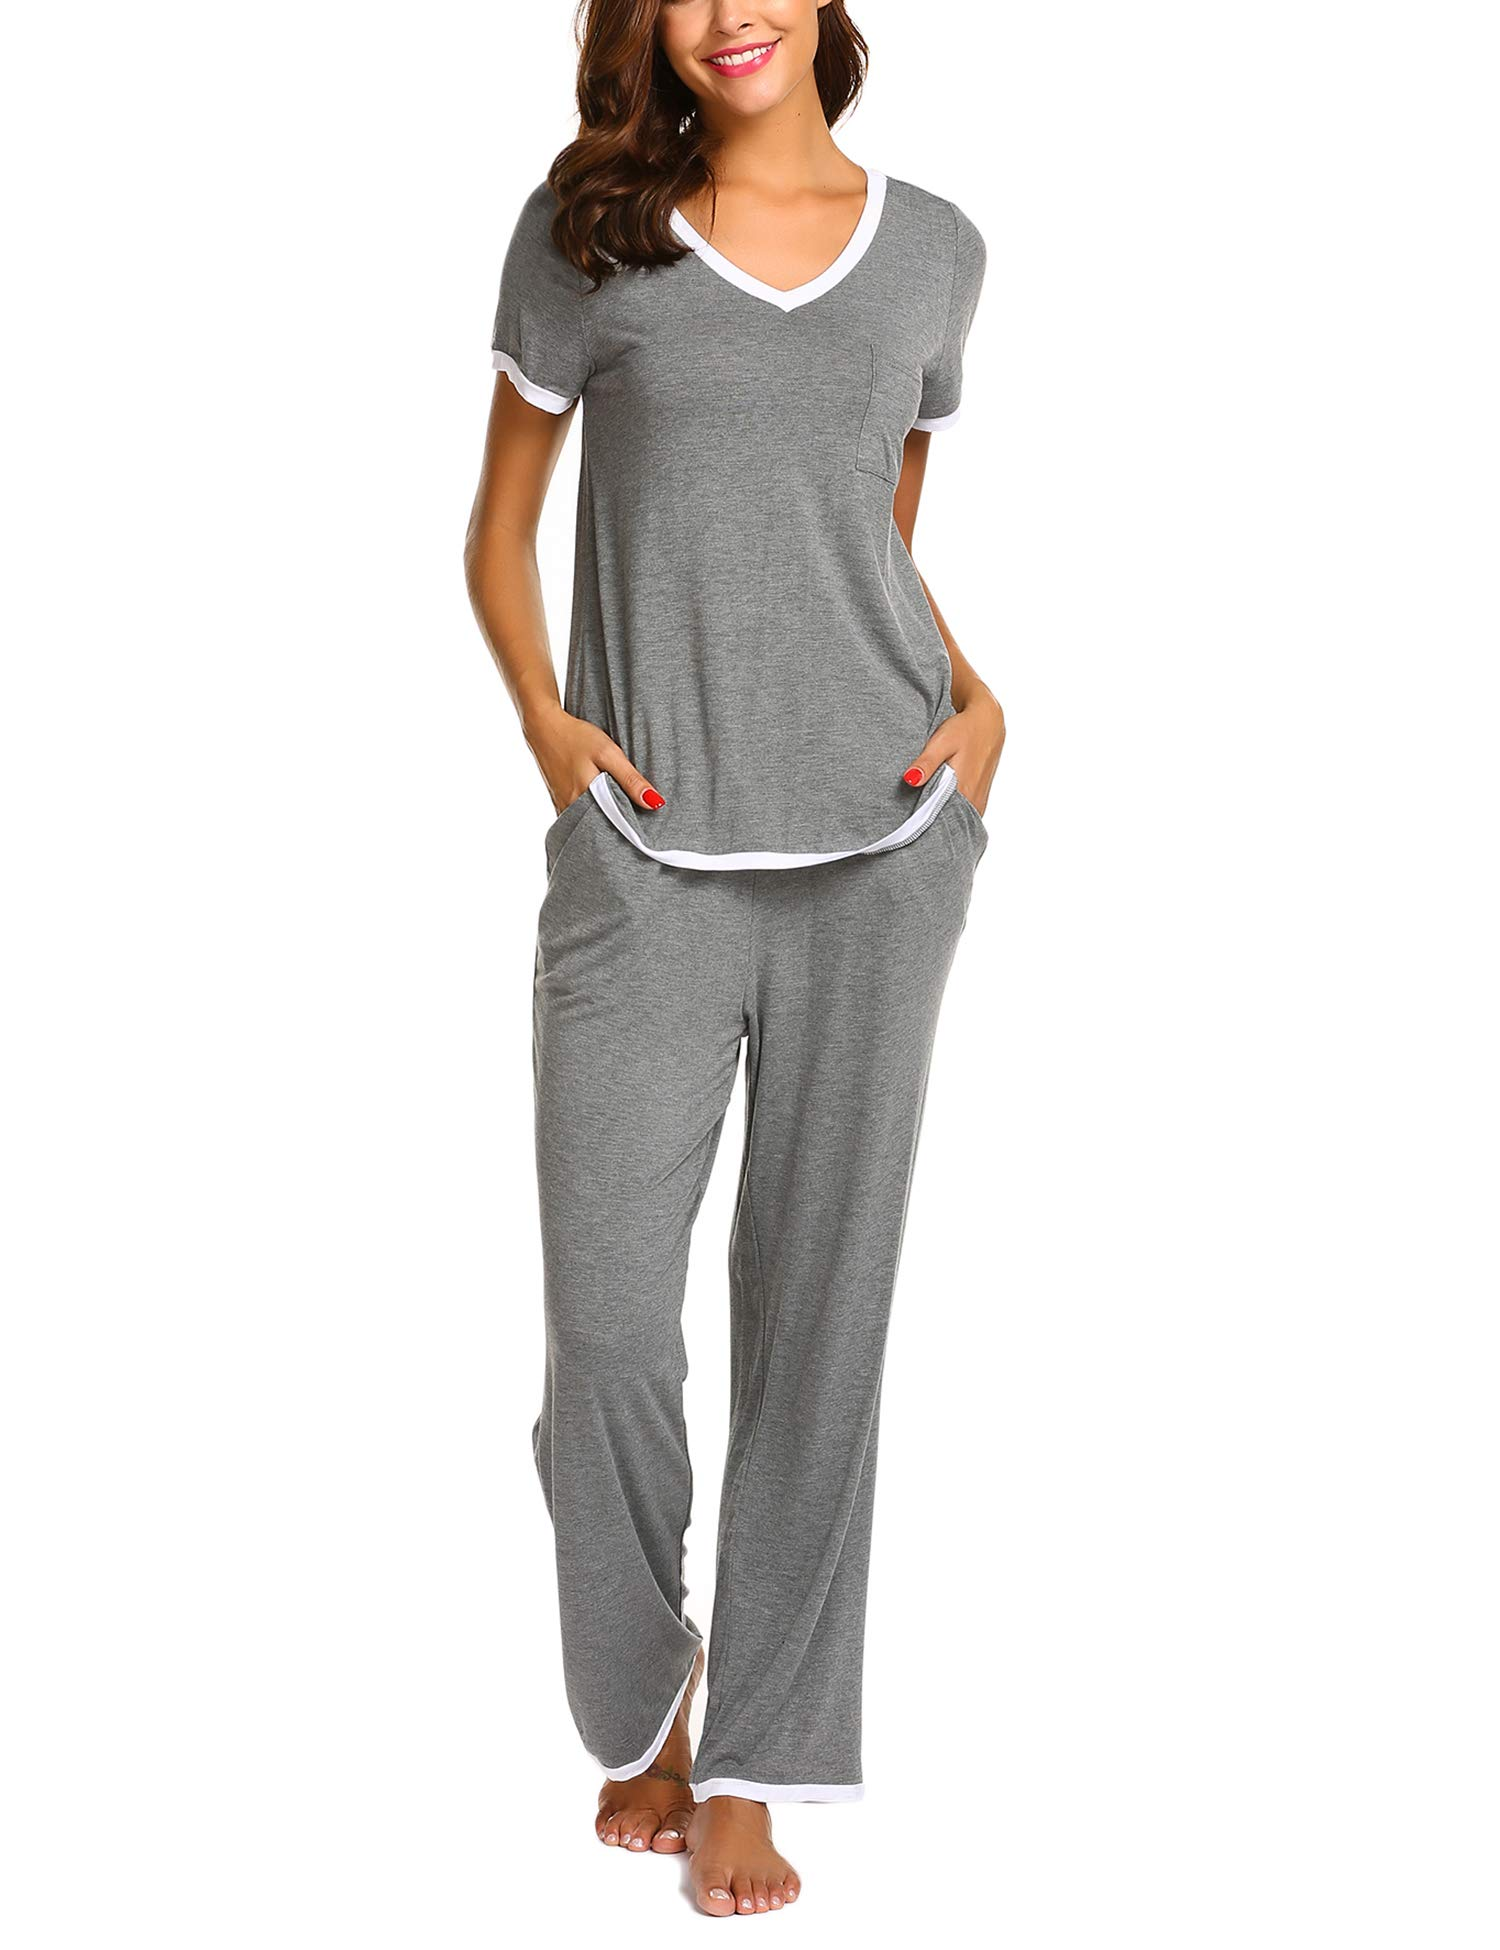 Ekouaer Women Pajamas Set V-Neck Short Sleeve Top and Elastic Waist Long Pants Lounge Sleepwear (Gray XL) by Ekouaer (Image #3)